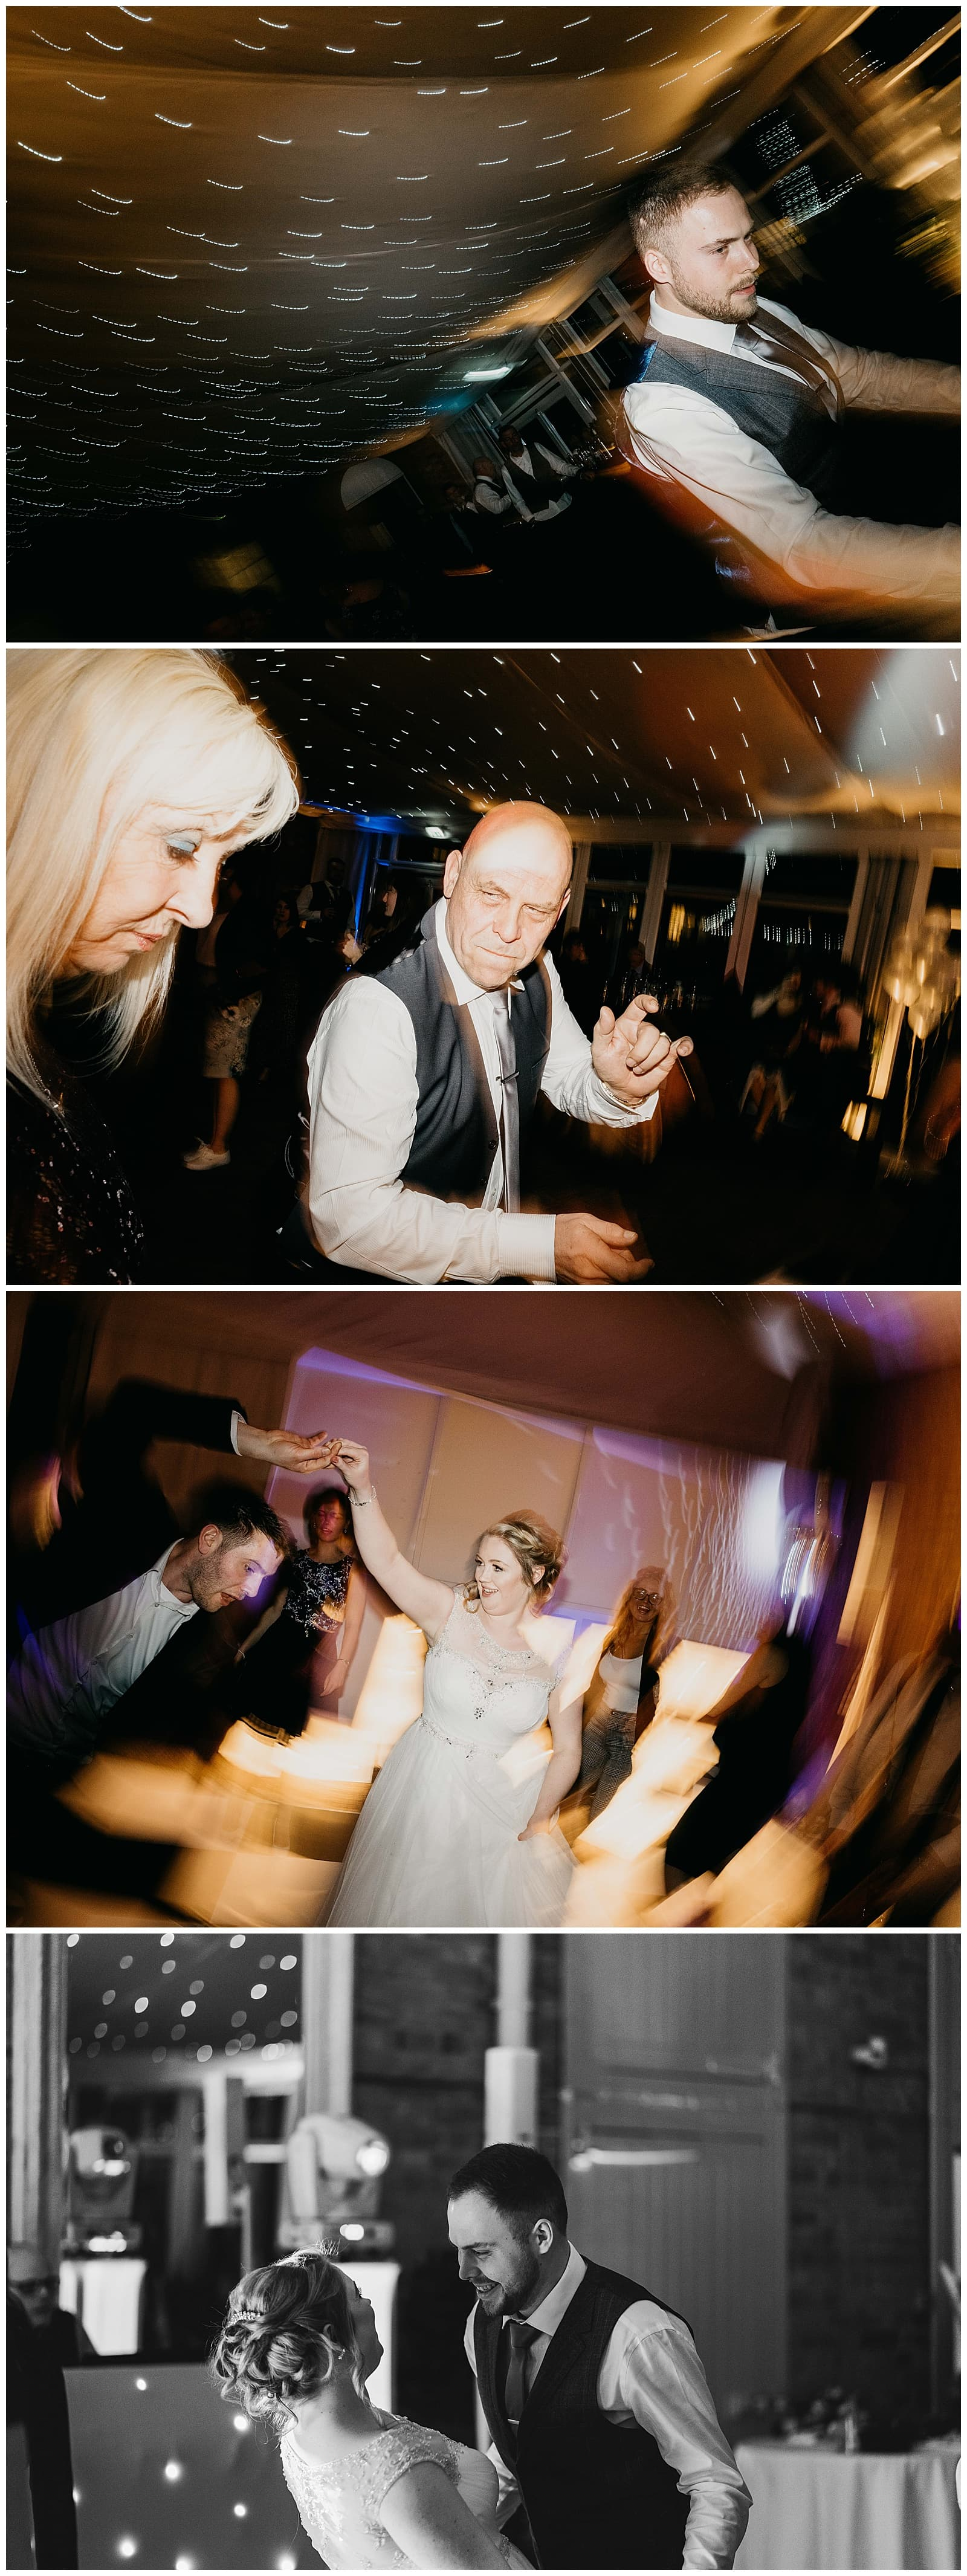 bride and groom join in the dancing on the dance floor at their Norwood Park wedding